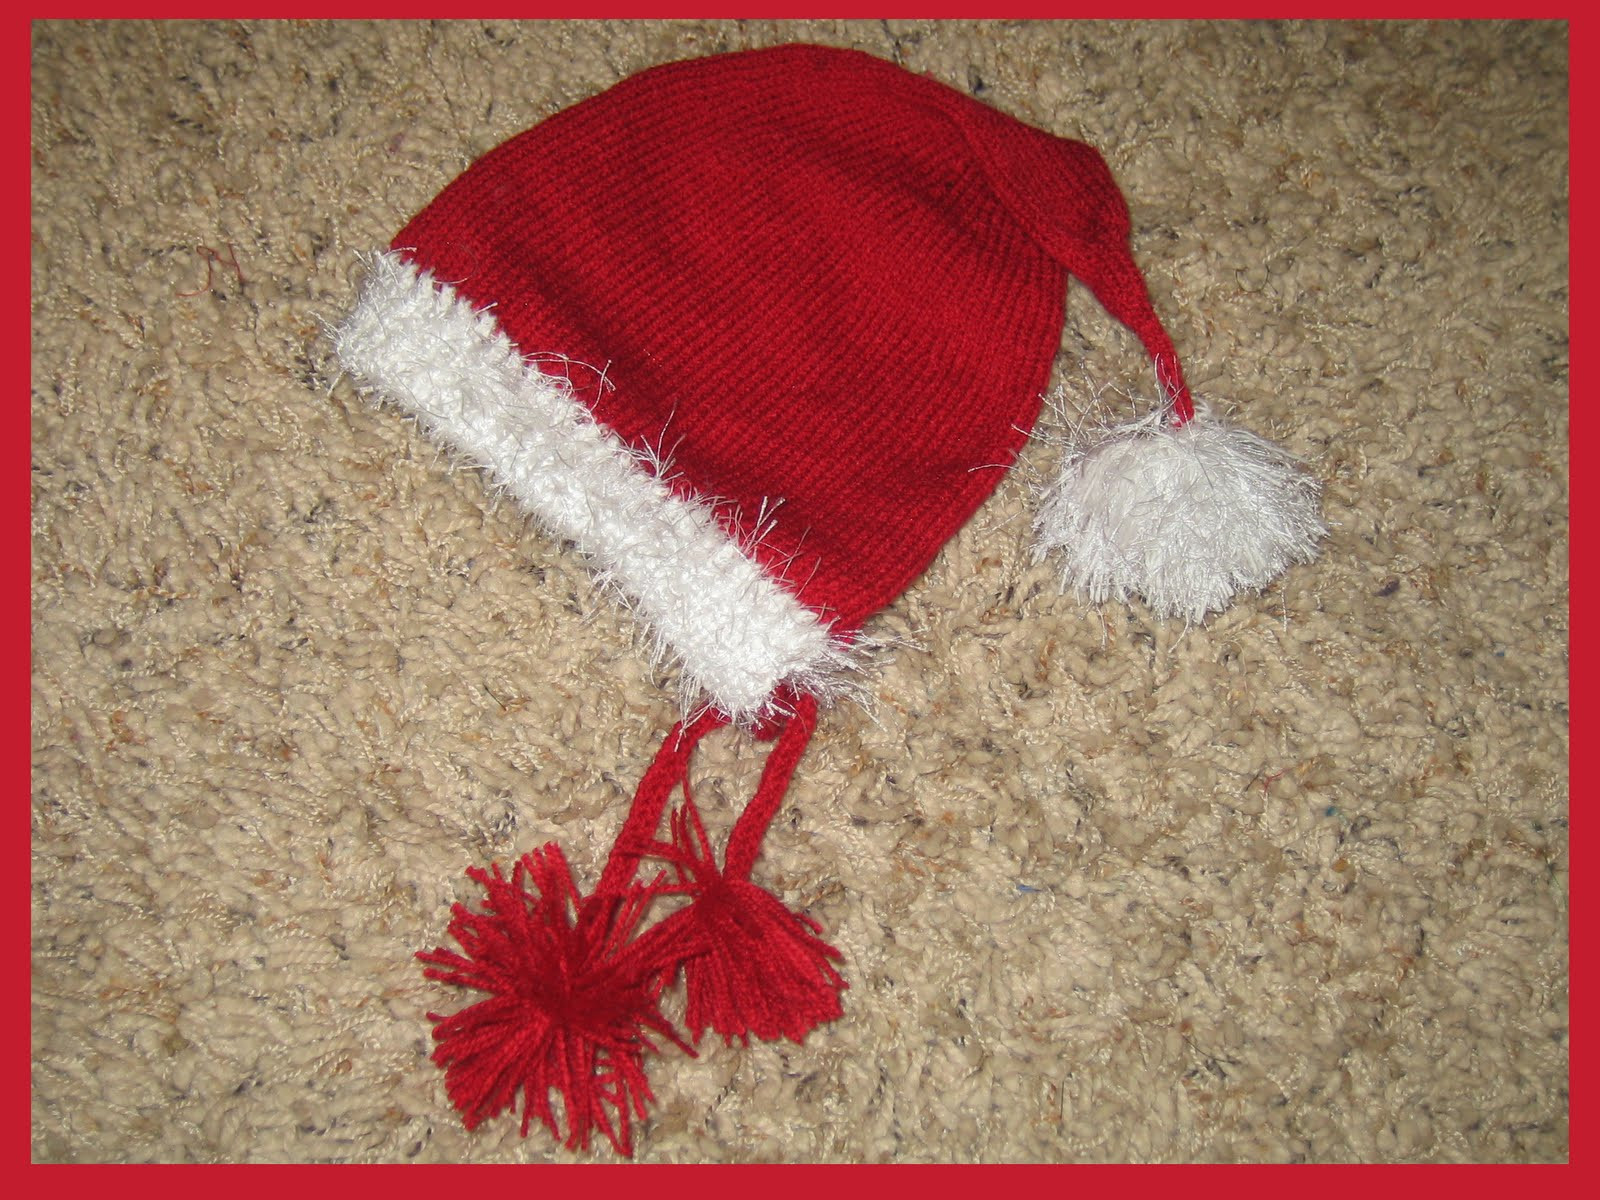 Inspirational Marzipanknits Free Machine Knit Pattern for A Baby Santa Hat Santa Hat Pattern Of Unique Baby Santa Hats – Tag Hats Santa Hat Pattern